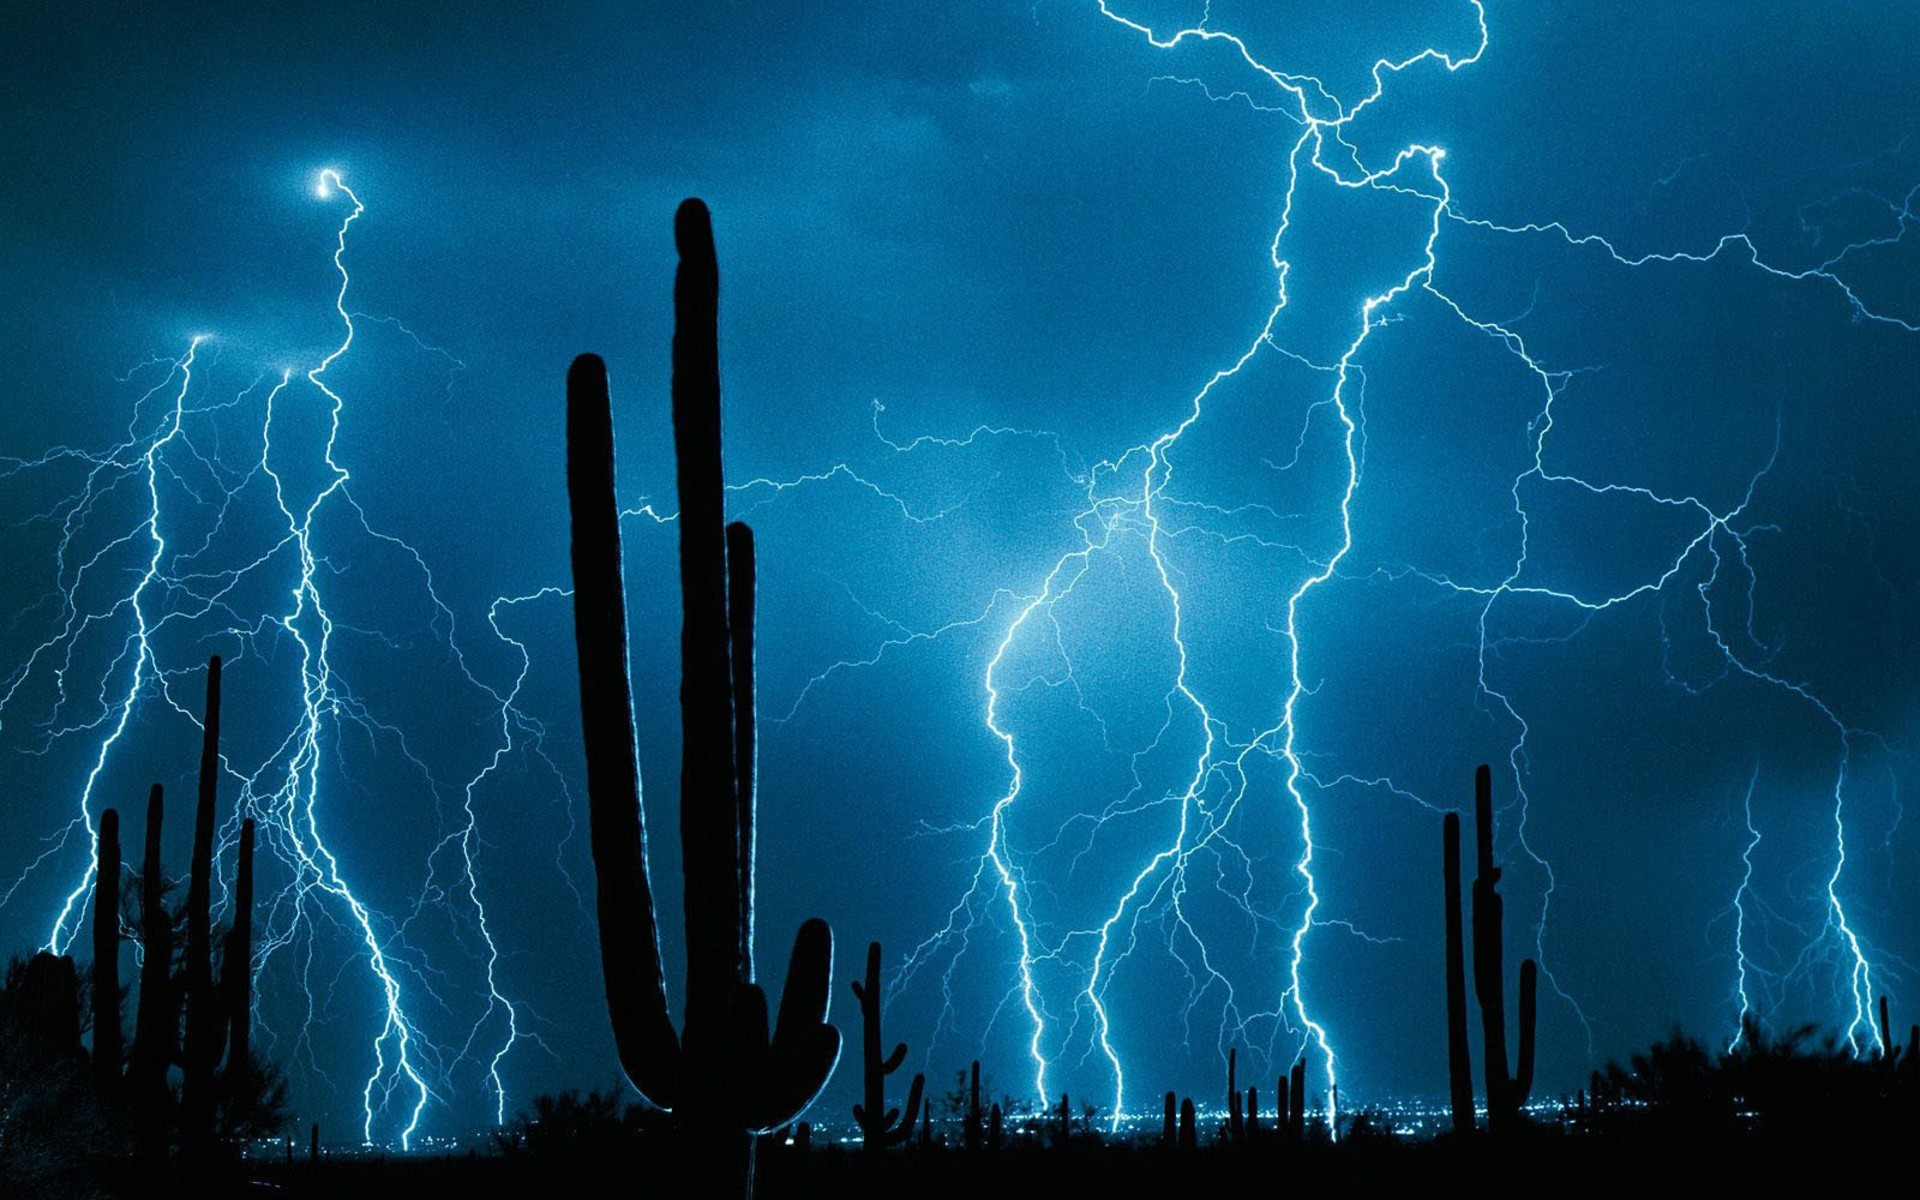 nature night Lightning cactus HD Wallpaper